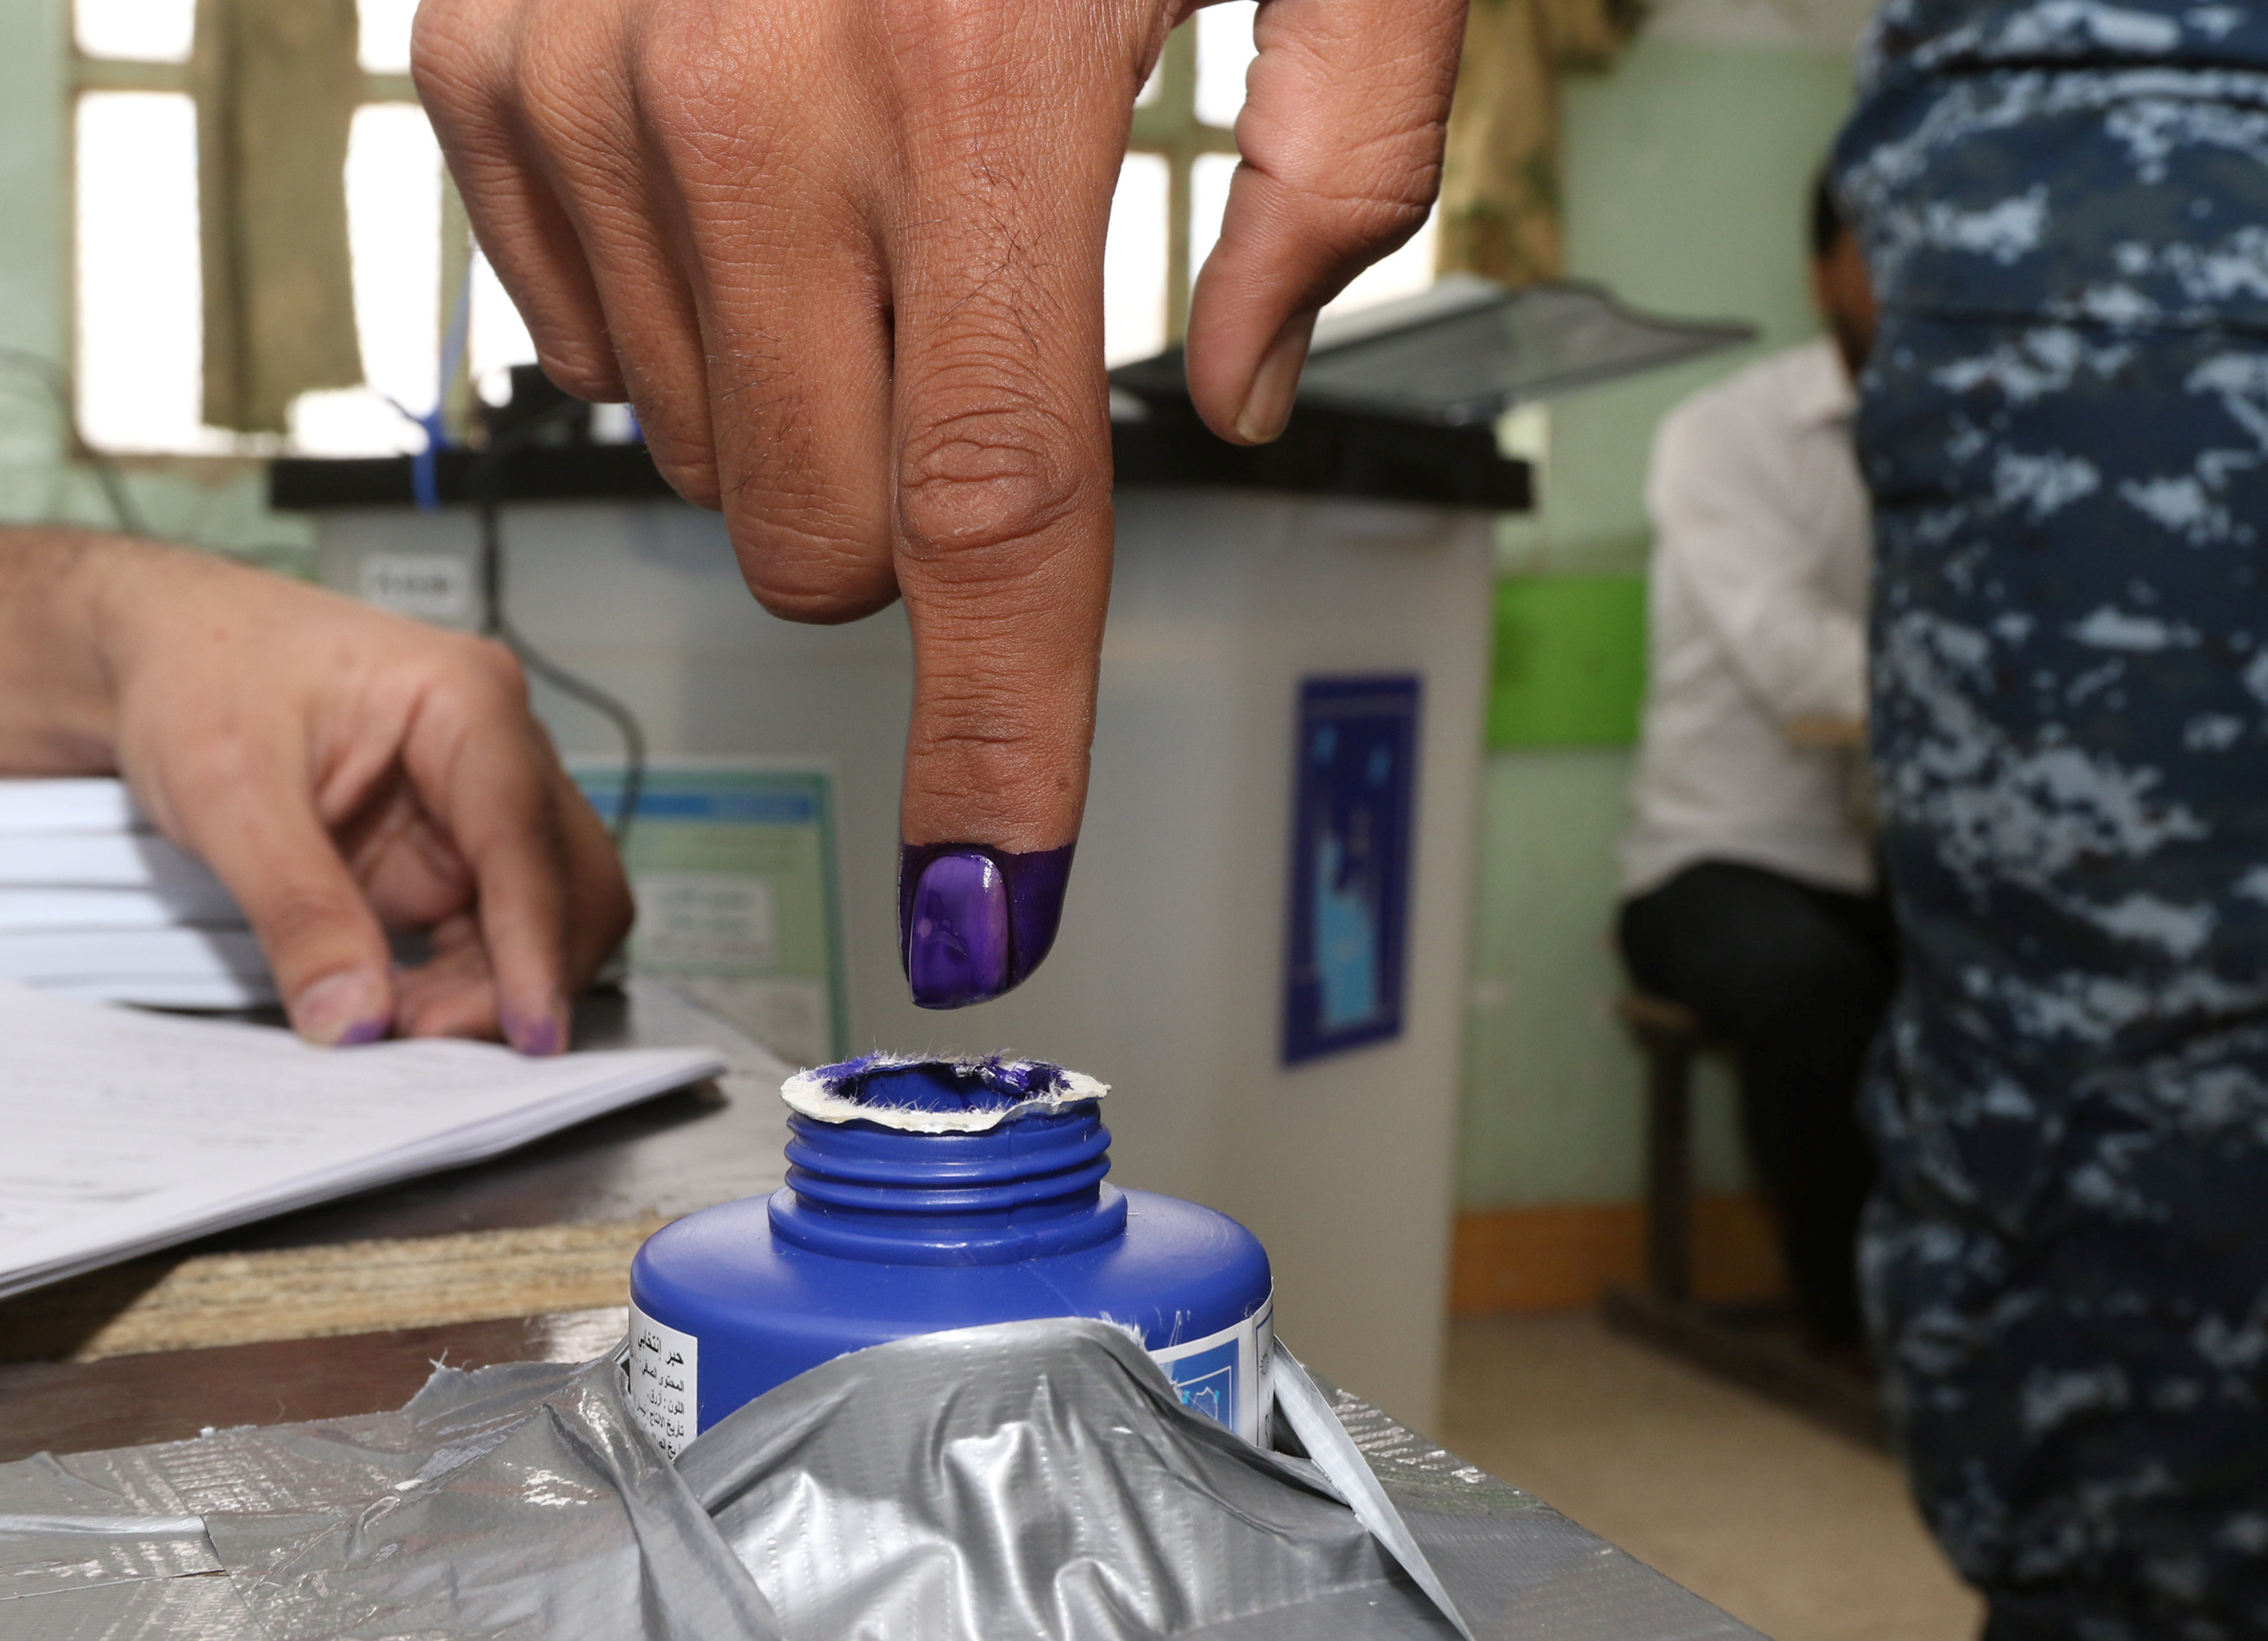 An Iraqi security member dips his finger in ink after casting his vote at a polling station, two days before polls open to the public in a parliamentary election in Kirkuk, Iraq May 10, 2018. REUTERS/Ako Rasheed